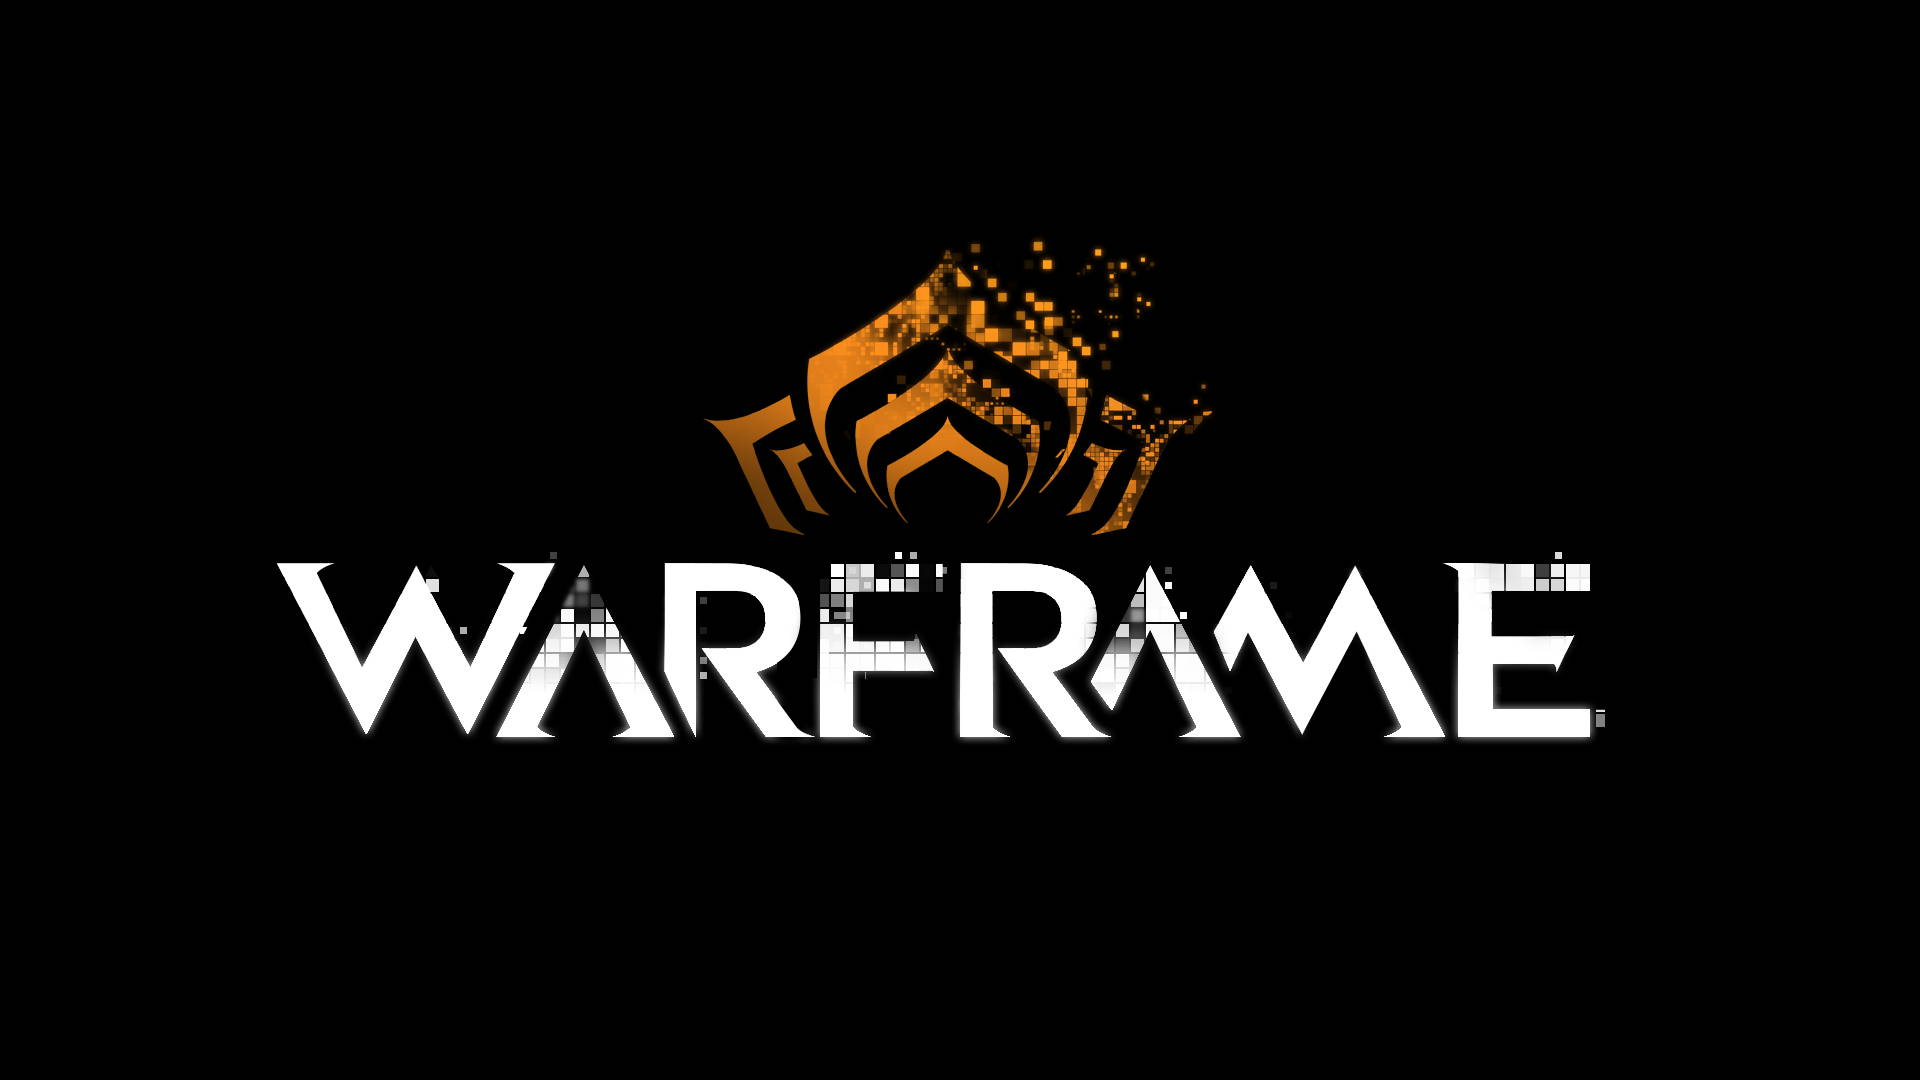 Warframe Images Playscope